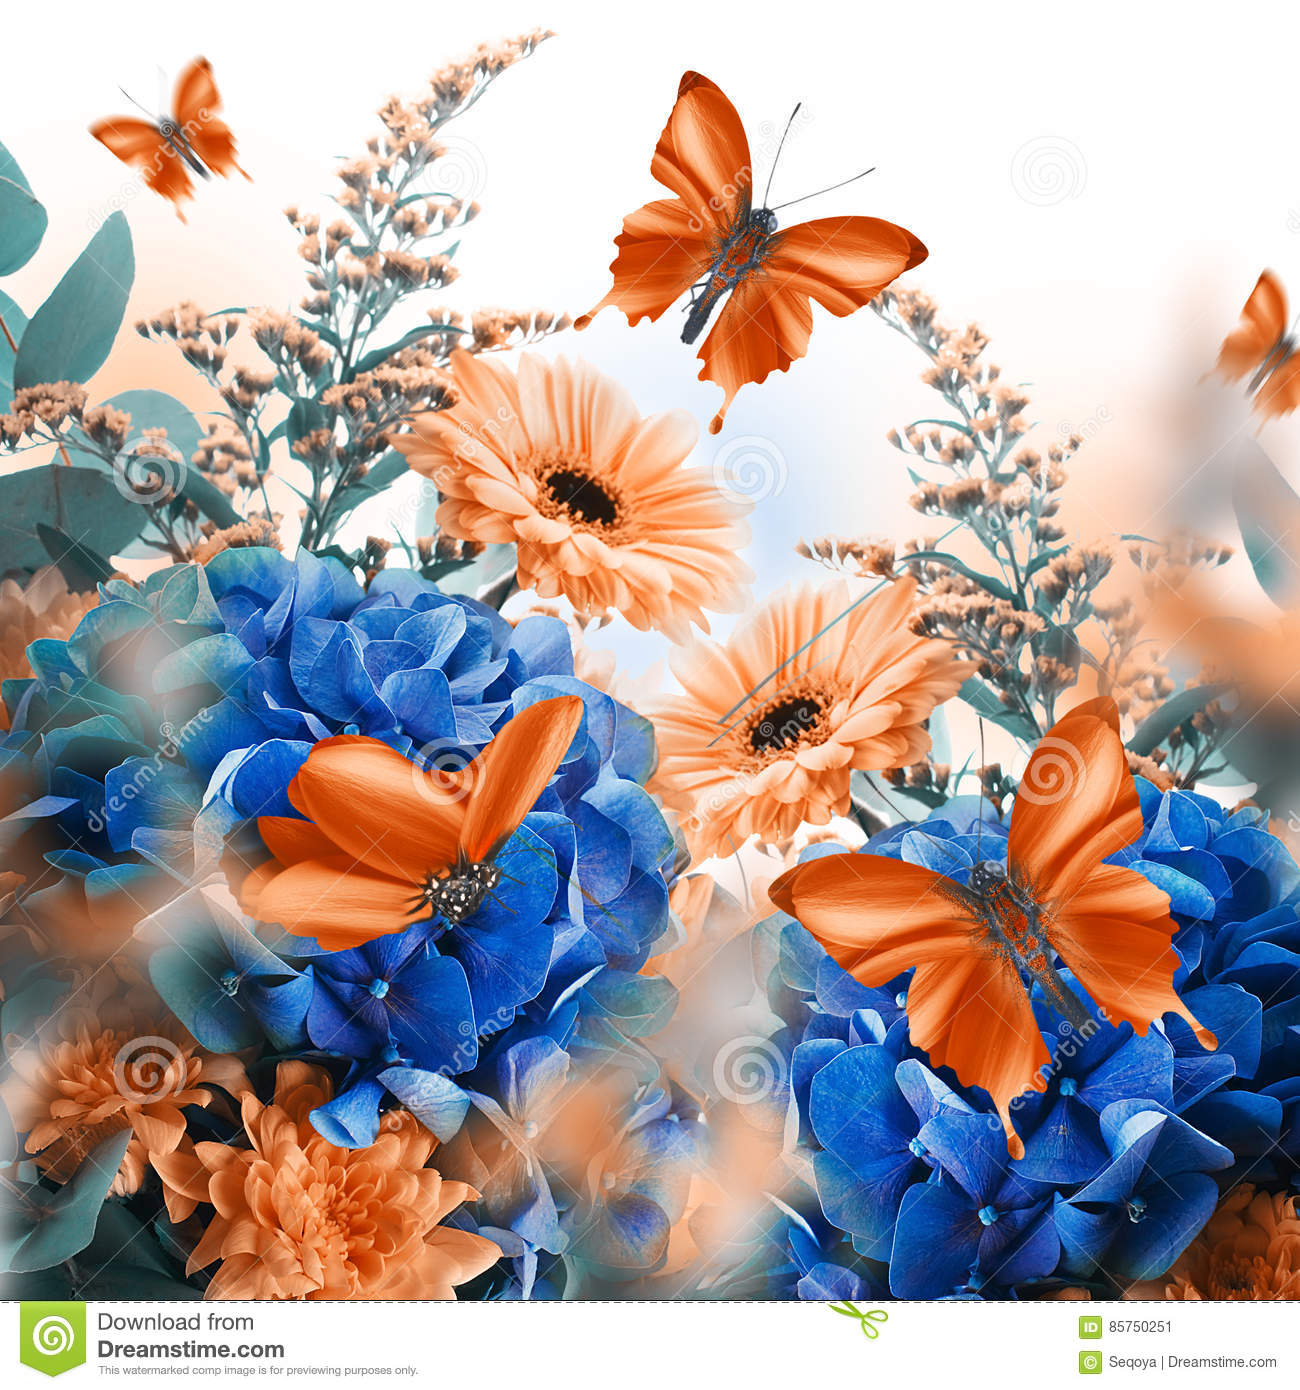 fairies and butterflies background